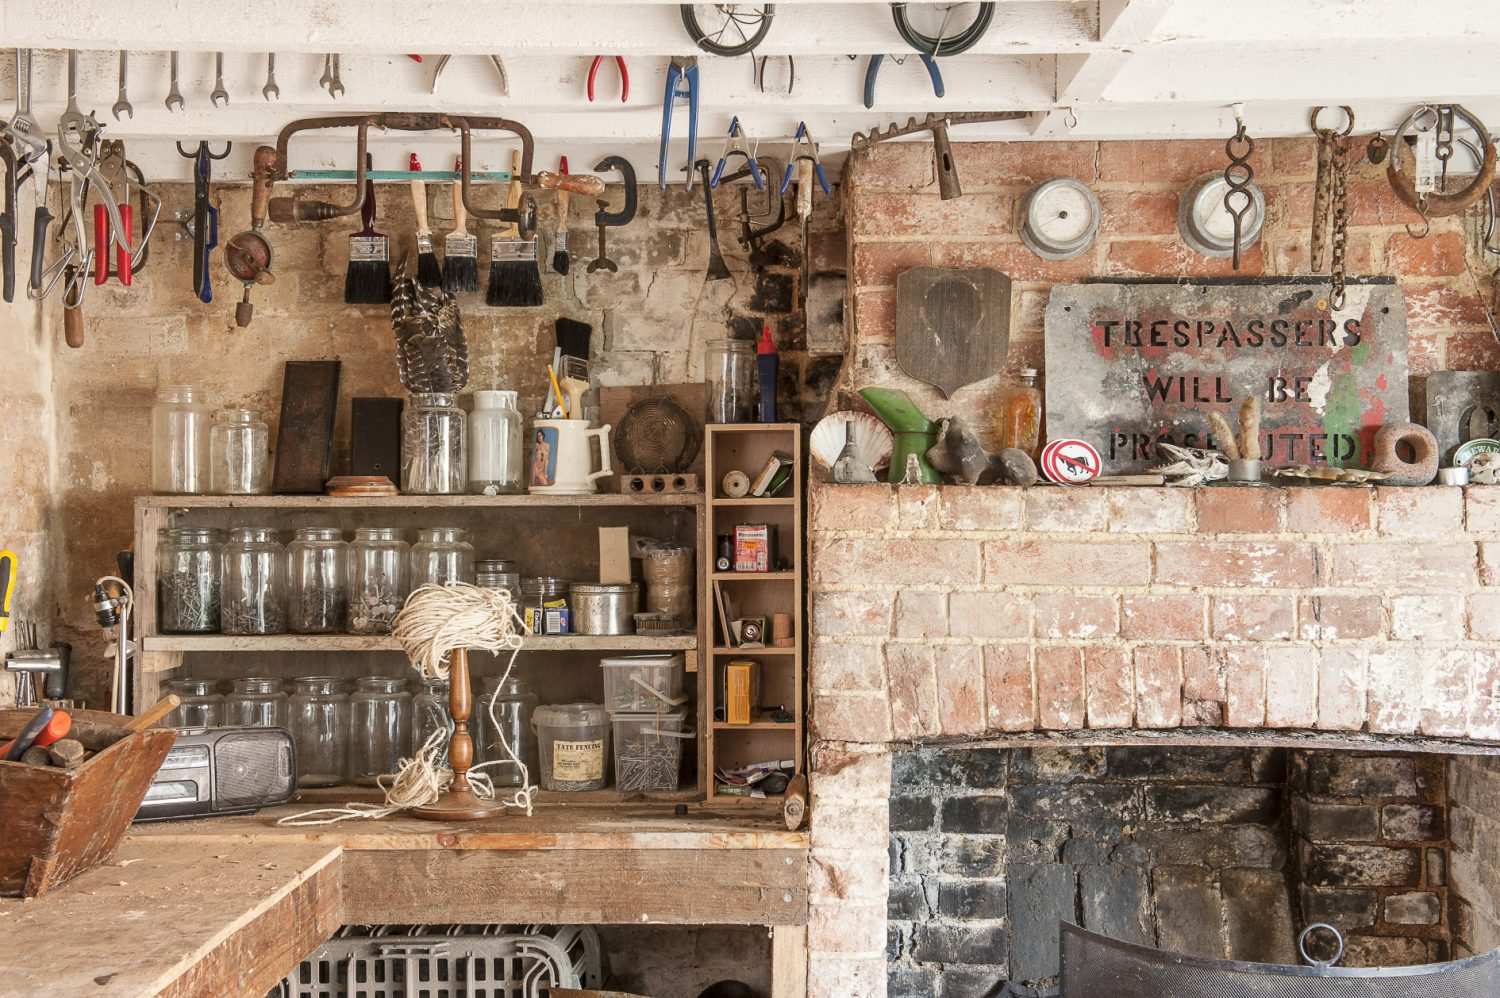 Nick's outbuilding is crammed with vintage tools